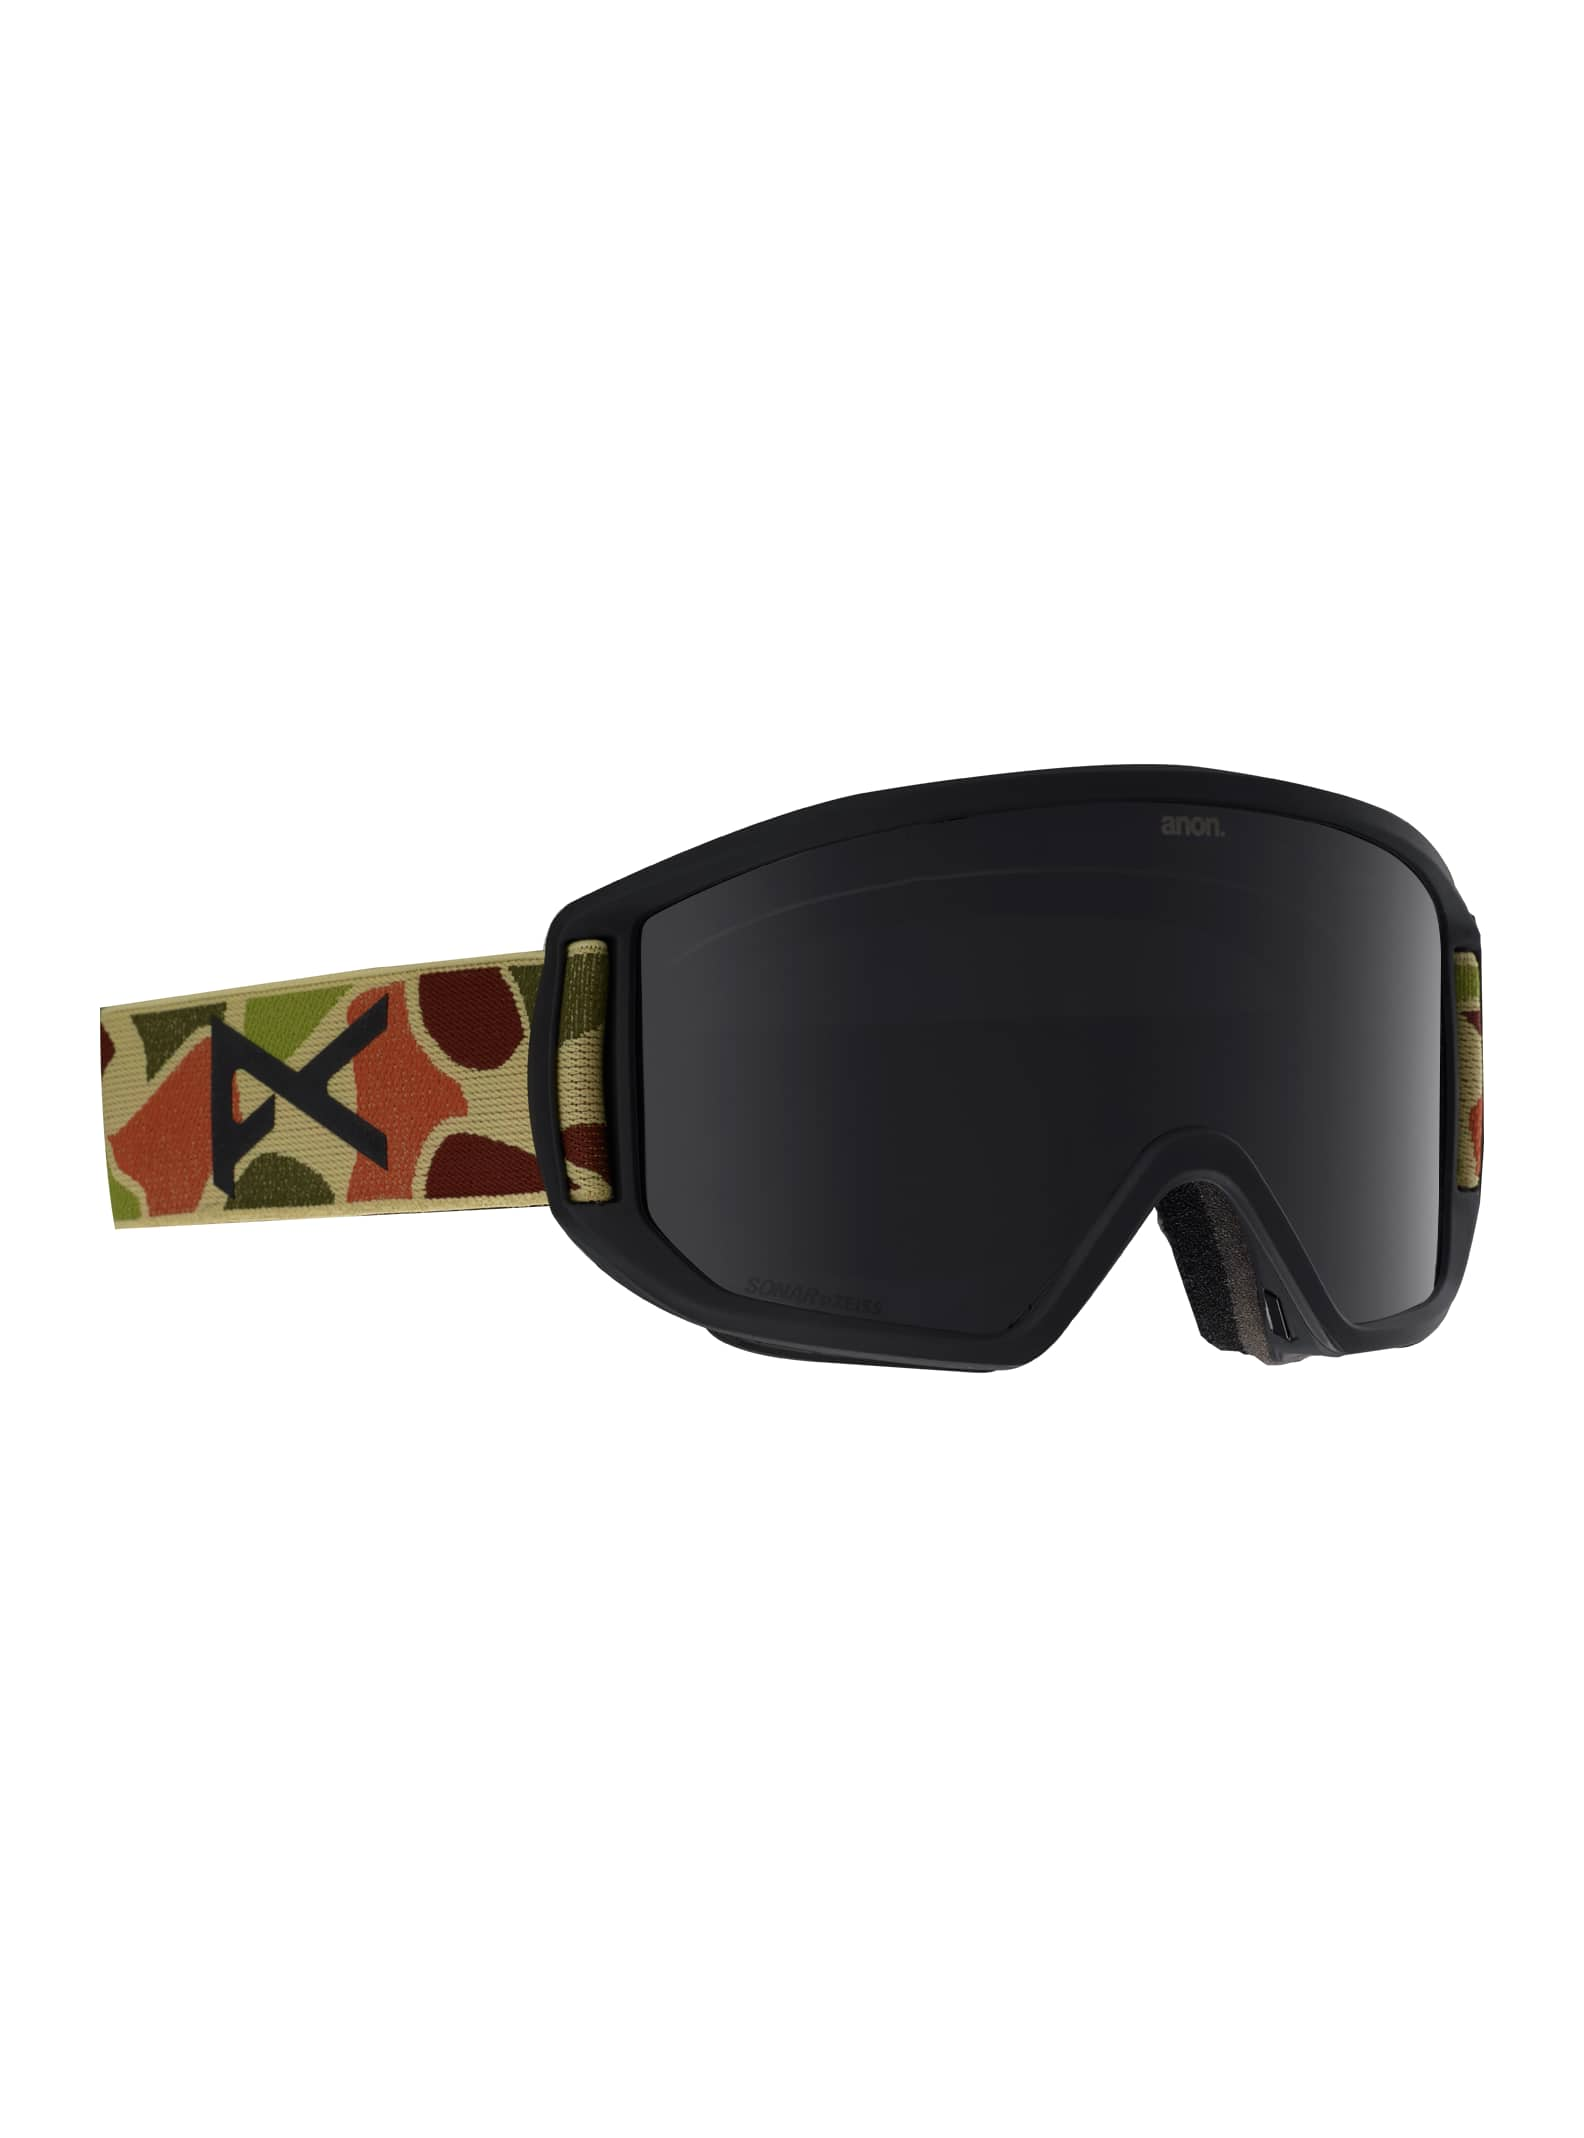 4655abce2146 Men s Anon Relapse Goggle + Spare Lens + MFI